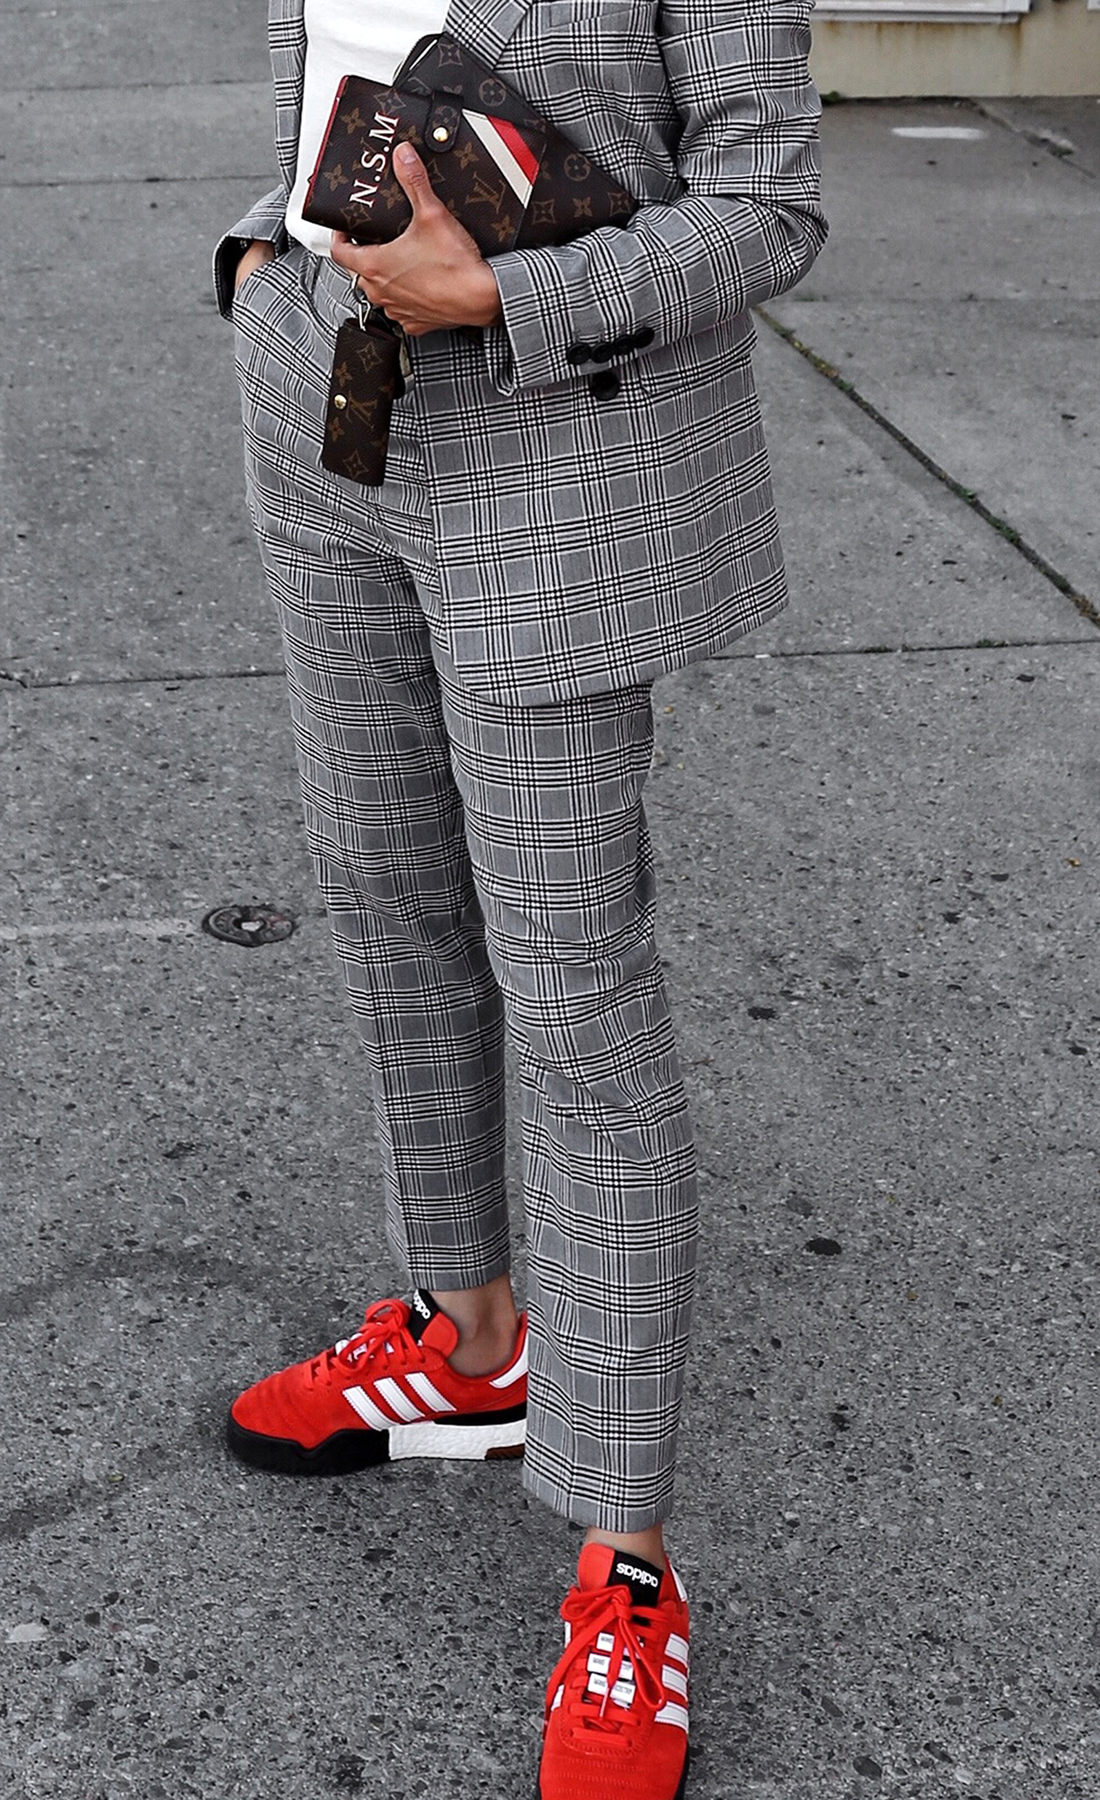 fw18 street style plaid suit women - menswear inspired - nordstrom - alexander wang Orange red AW BBall Soccer Sneakers, louis vuitton small agenda.JPG